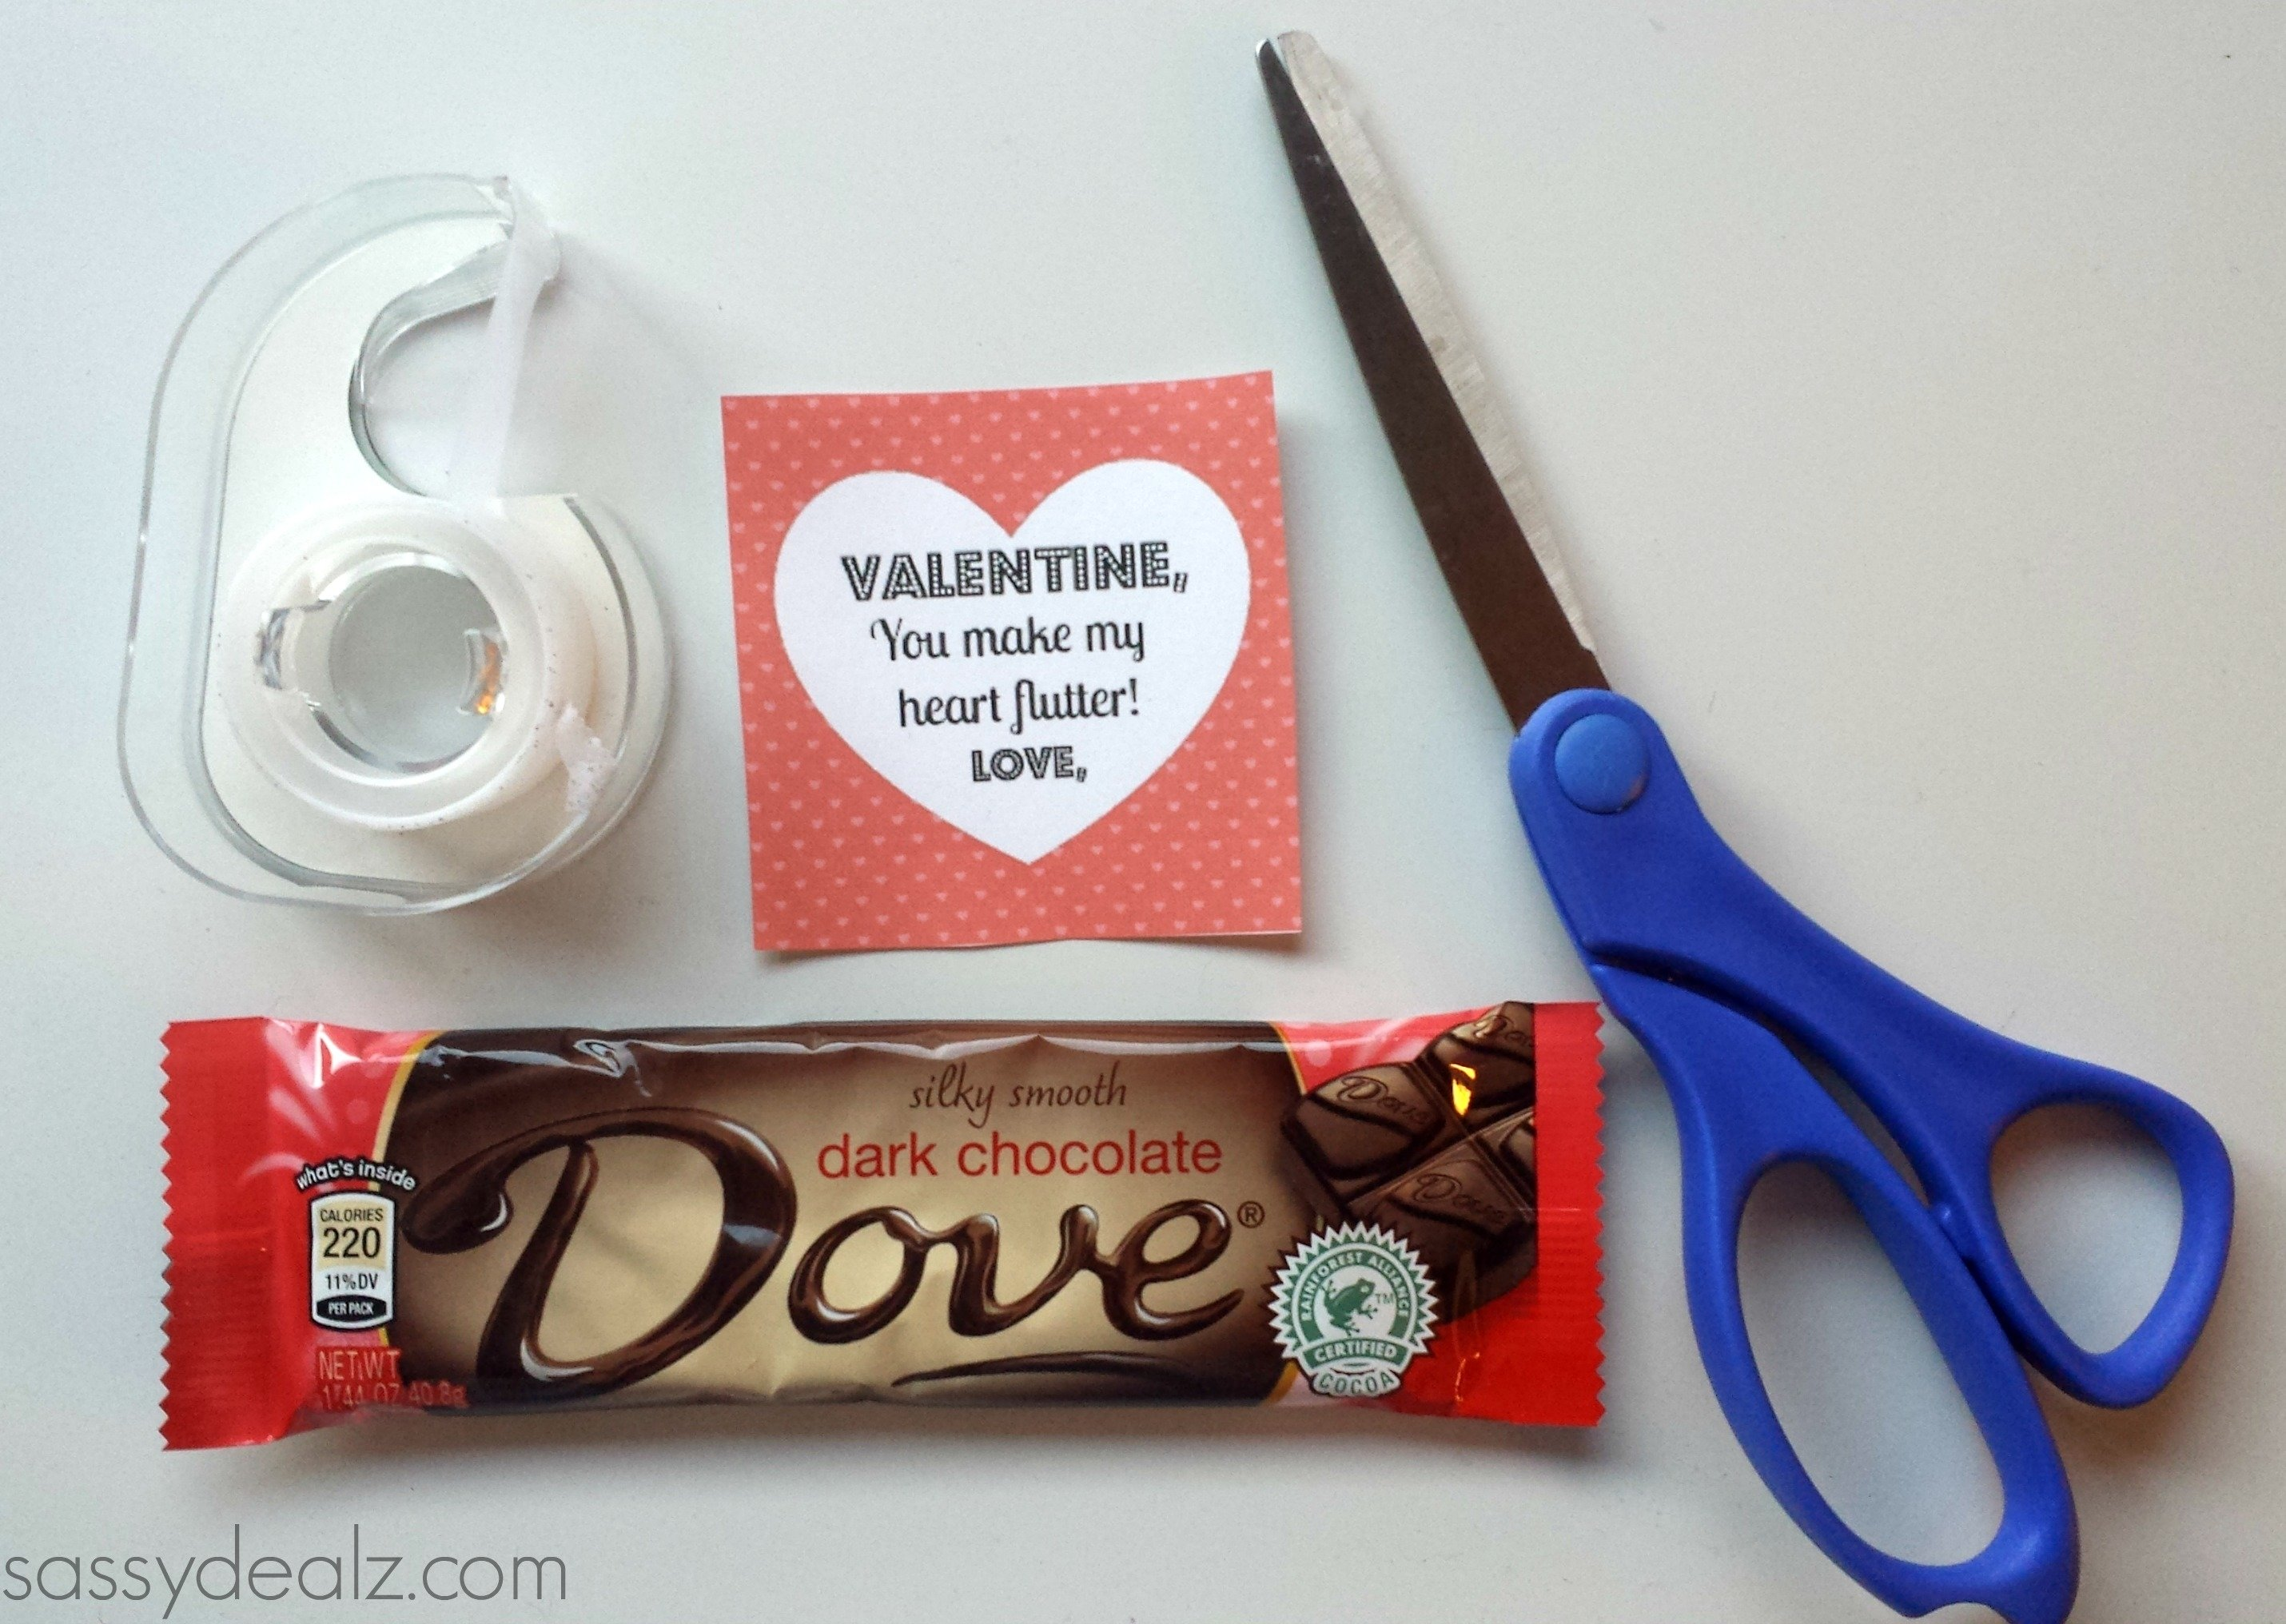 10 Lovable Valentine Gift Ideas For Friends valentine day gift ideas for friends dove chocolate valentines 2020